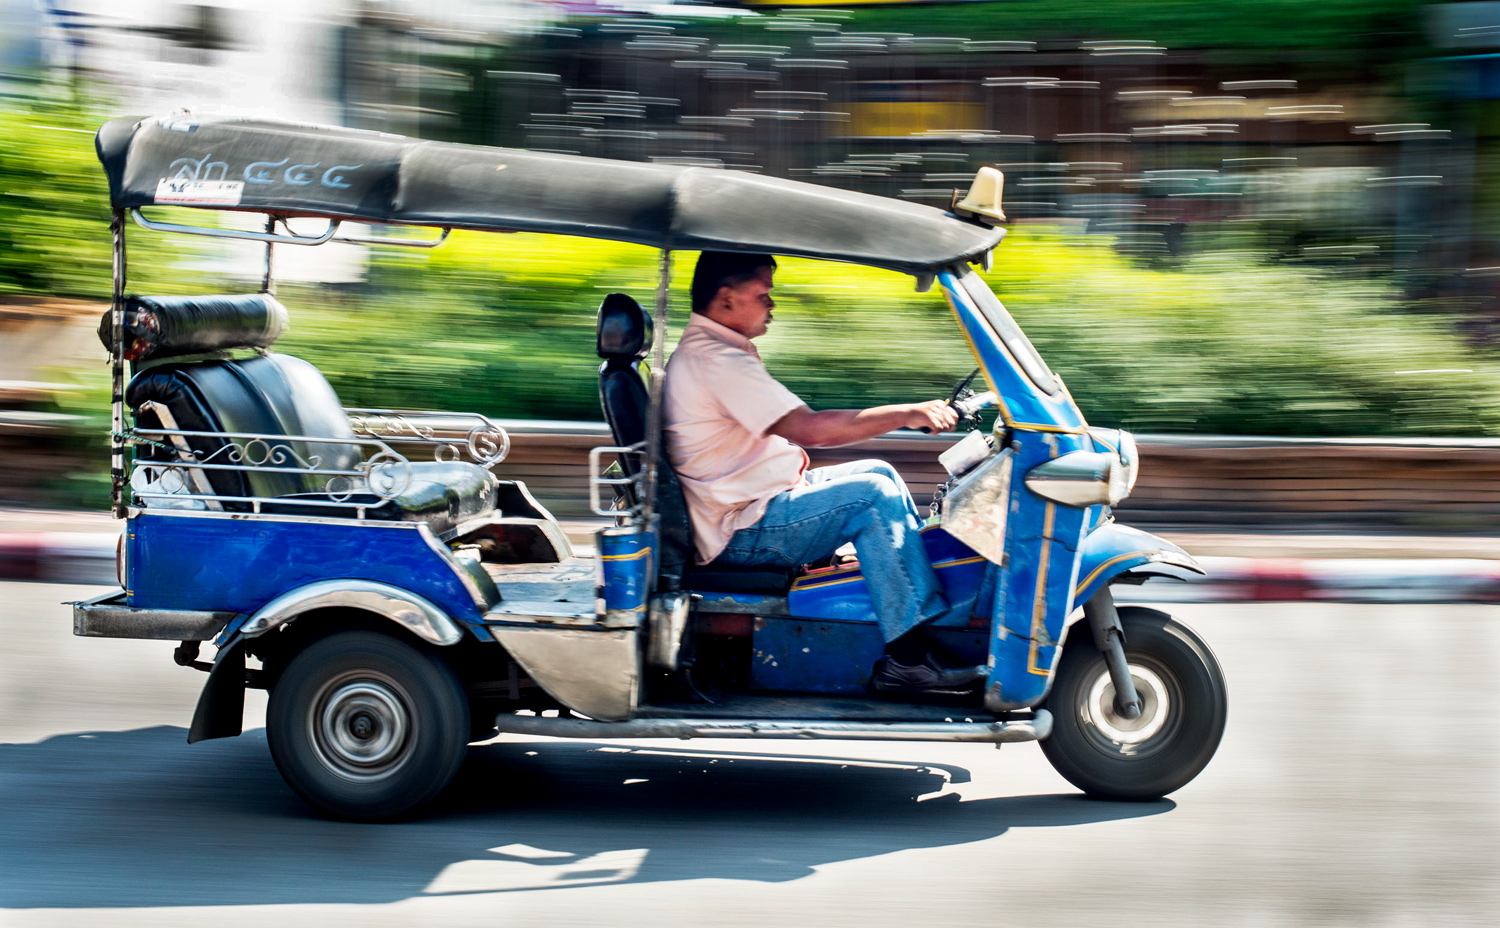 Tuktuk Panning Using a Slow Shutter Speed to a Create Sense of Motion